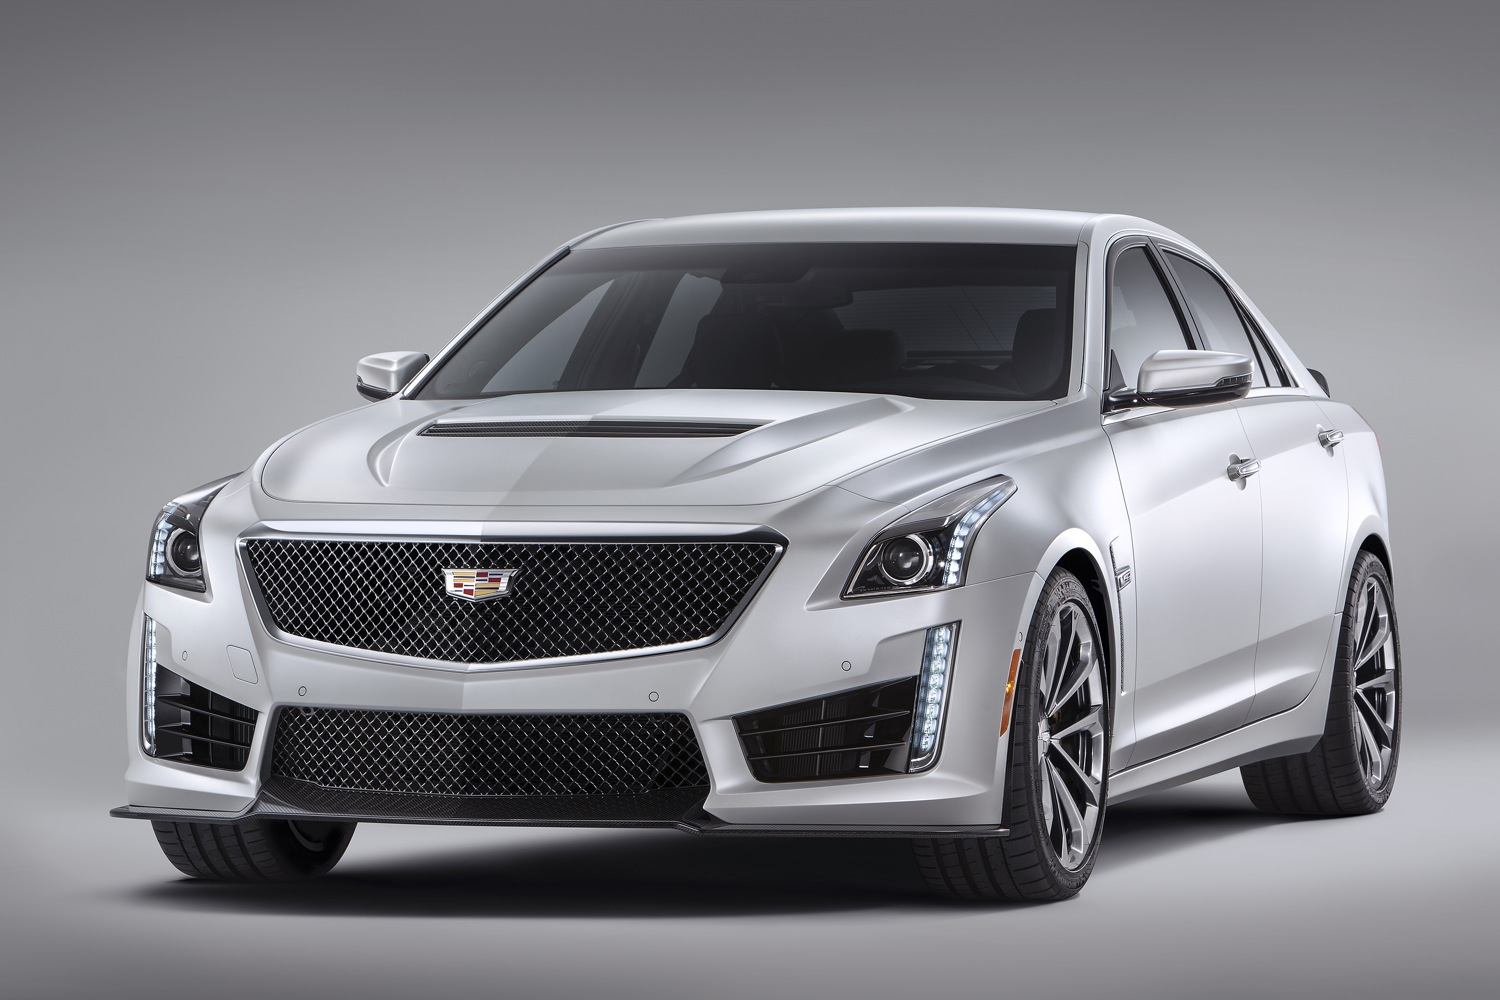 2016 Cadillac CTS-V is the Most Powerful Cadillac Ever (640 HP To Be Exact)  - OnAllCylinders